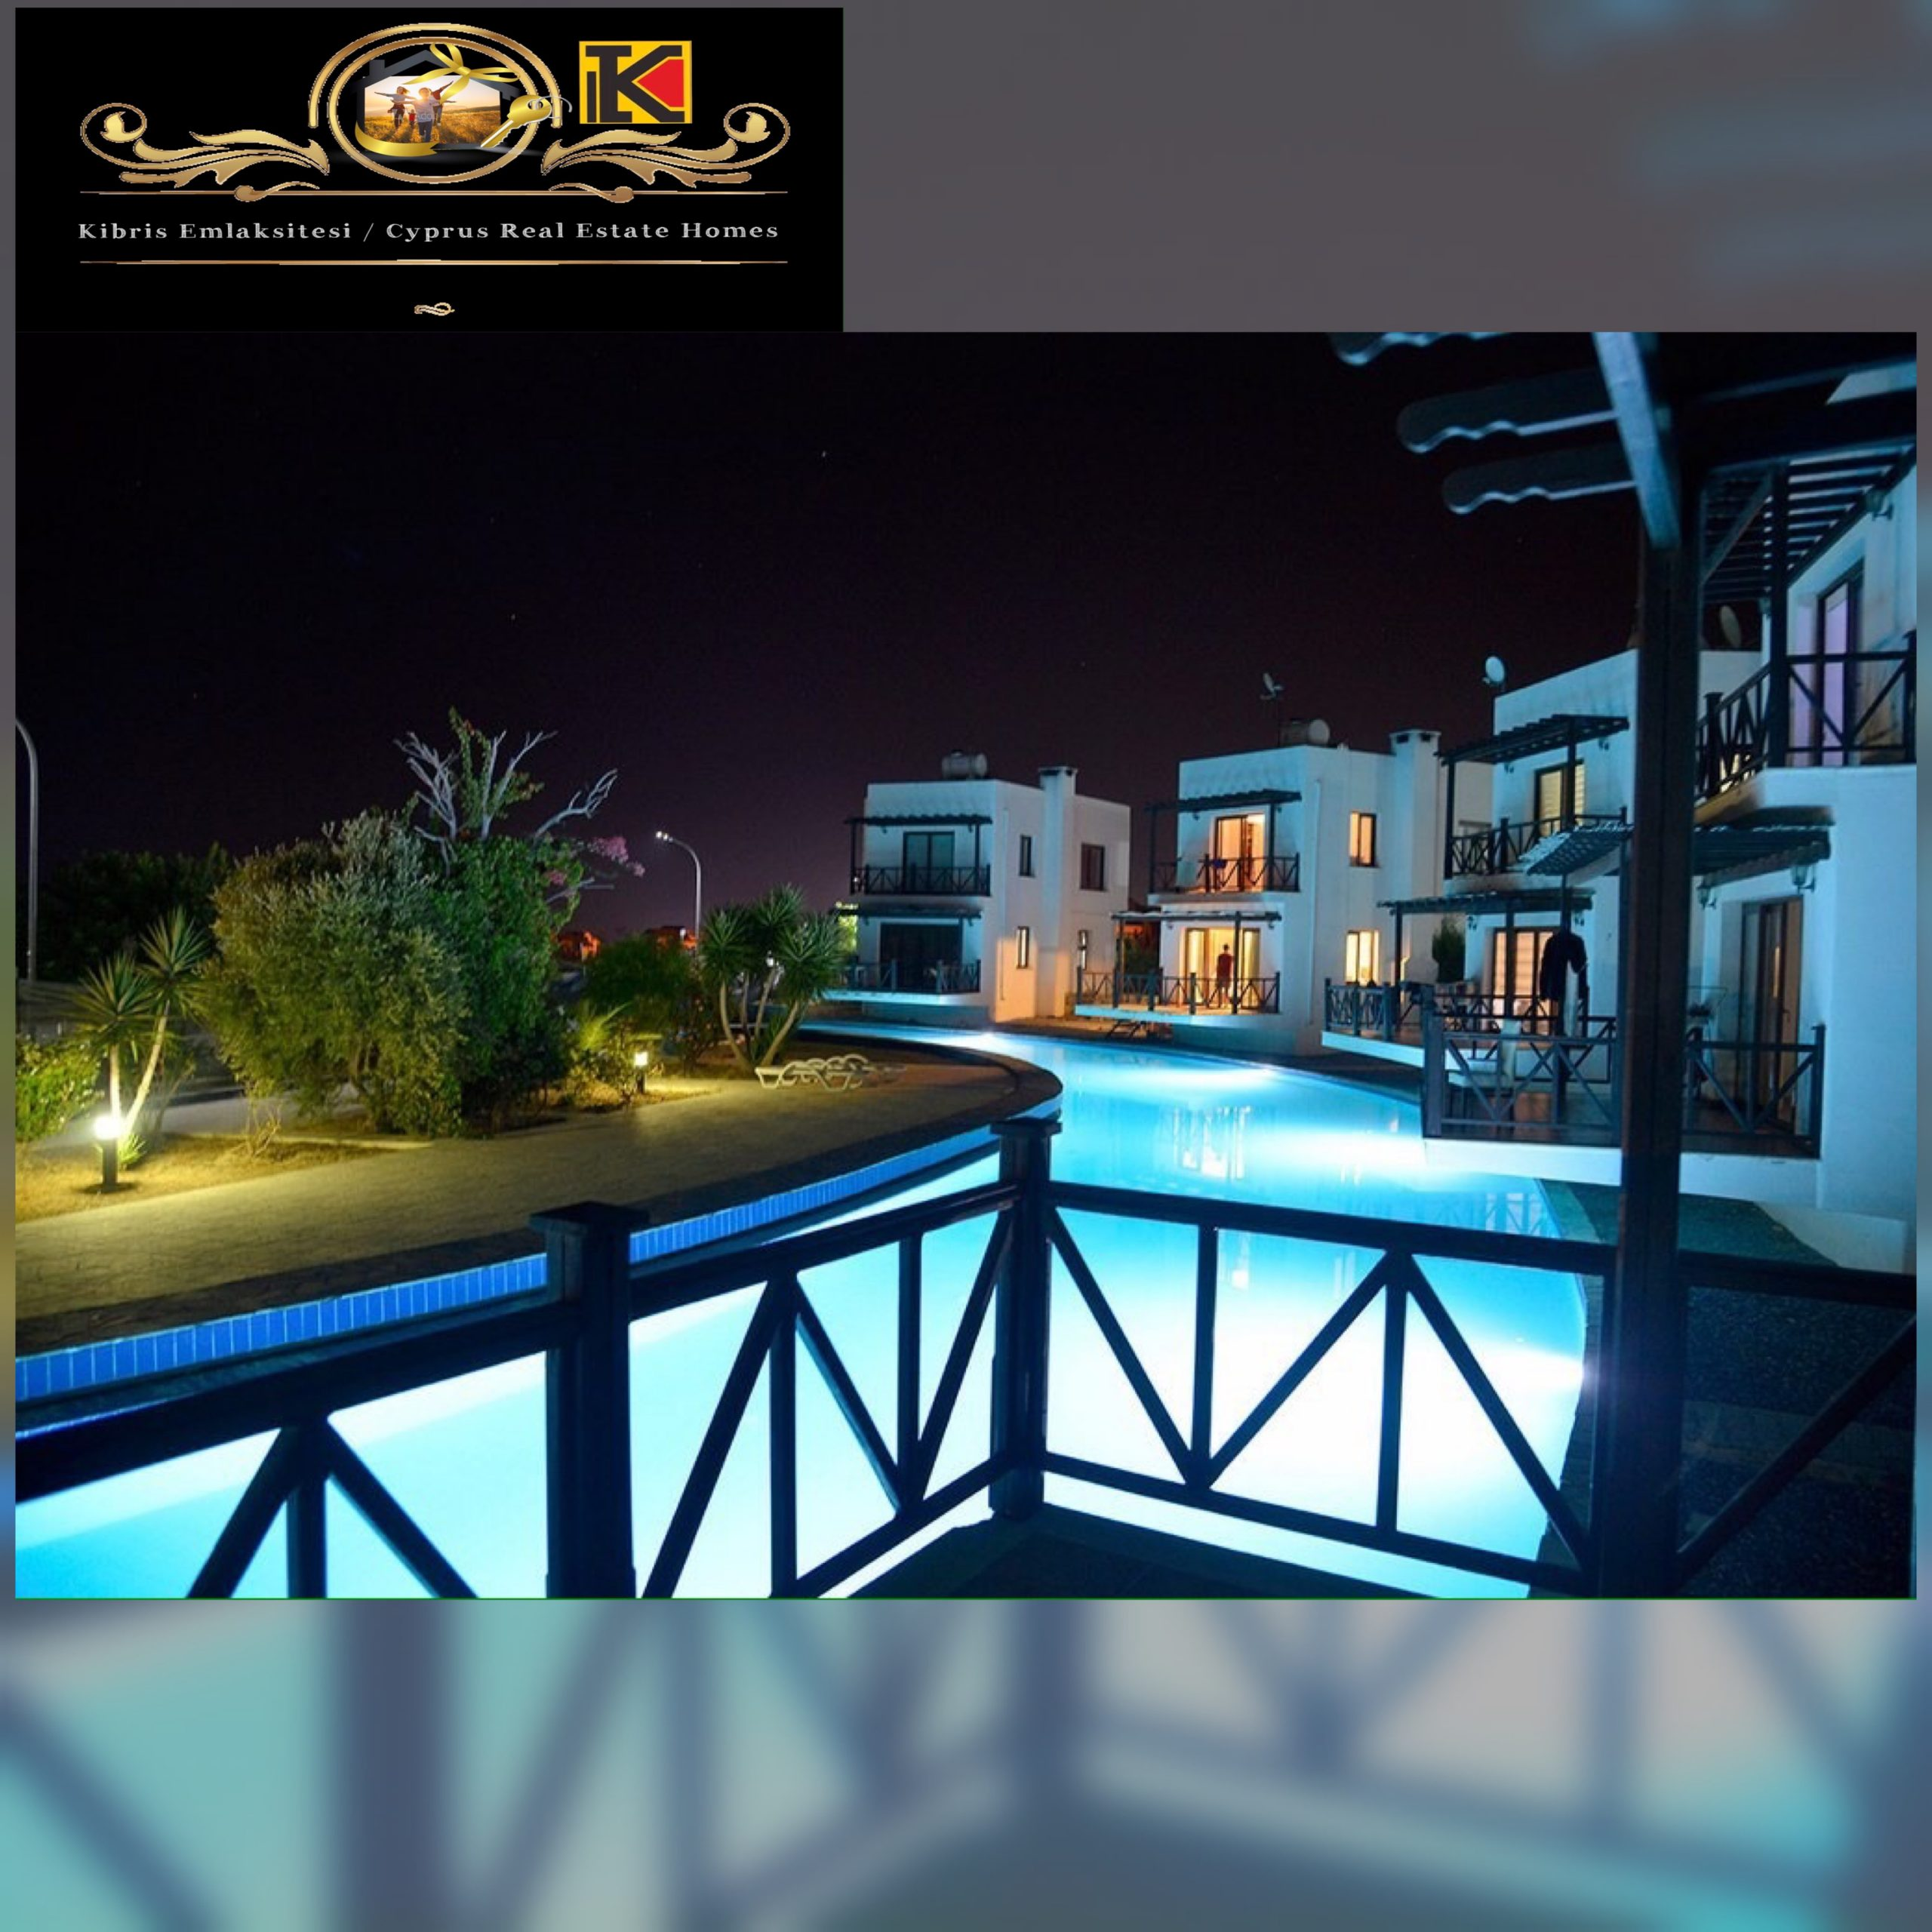 1,2,3 Bedroom Apartment And 3 Bedroom Villa For Sale Location Yesiltepe Girne